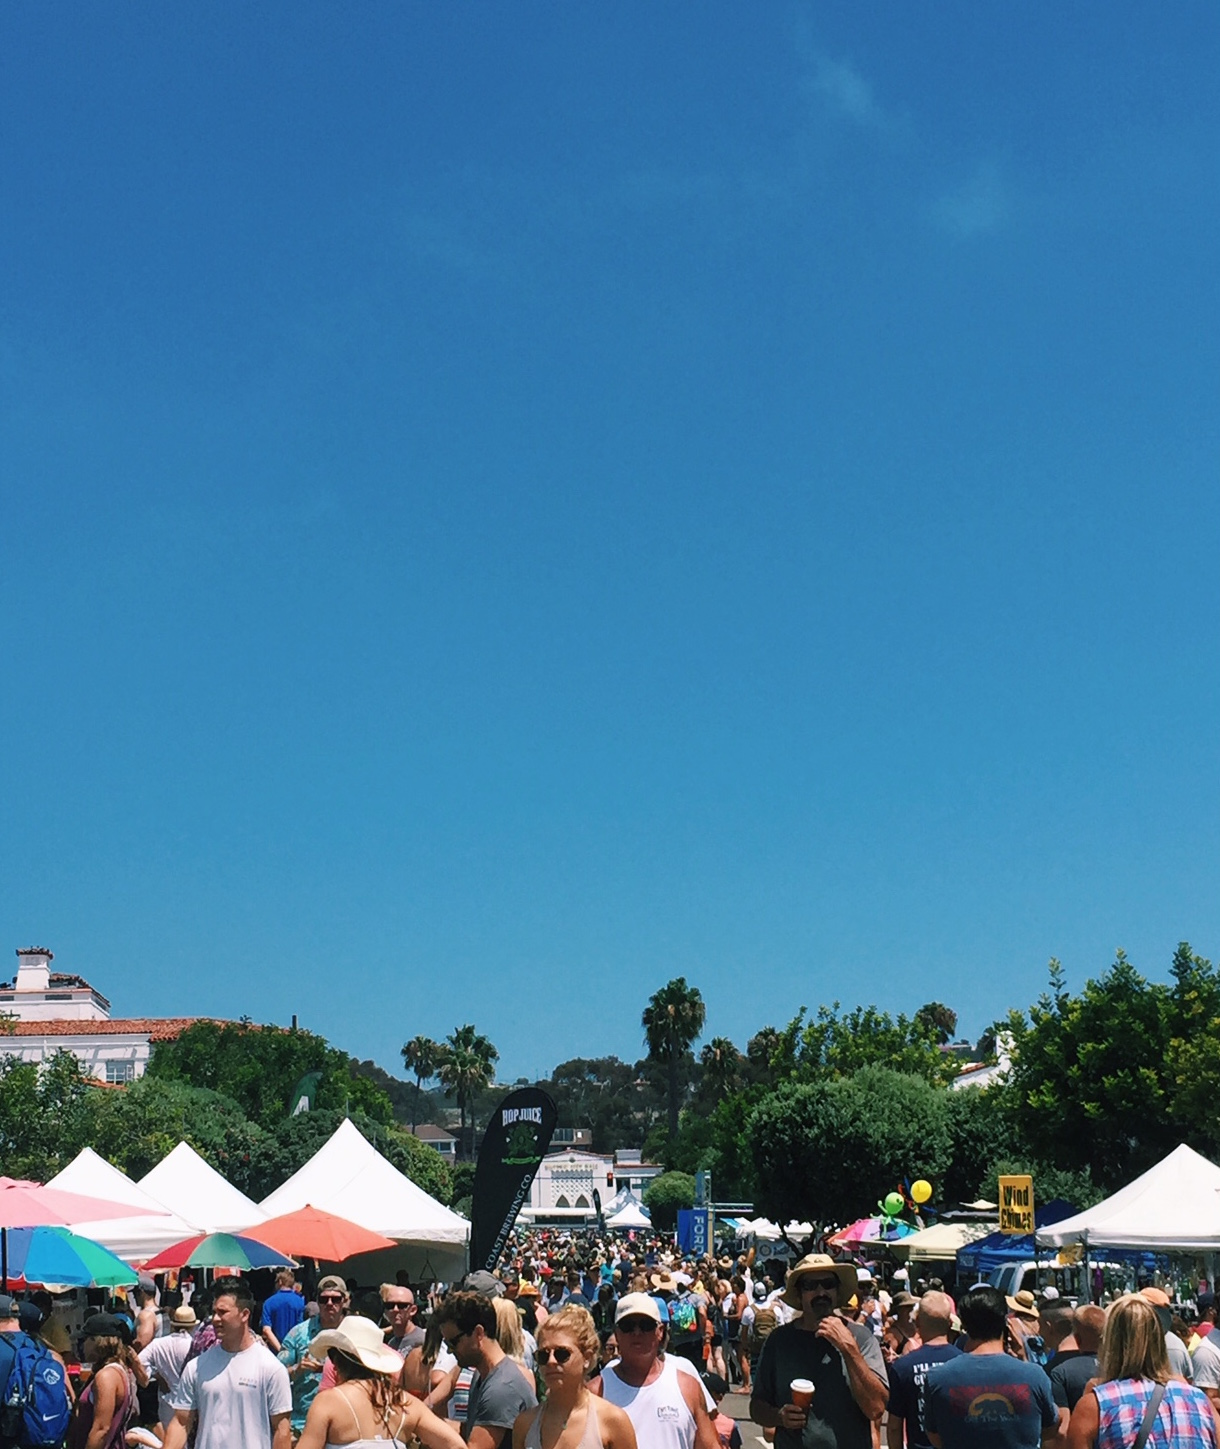 The Fiesta Festival was packed with all sorts of fun booths, food challenges, music, and just about everything else!